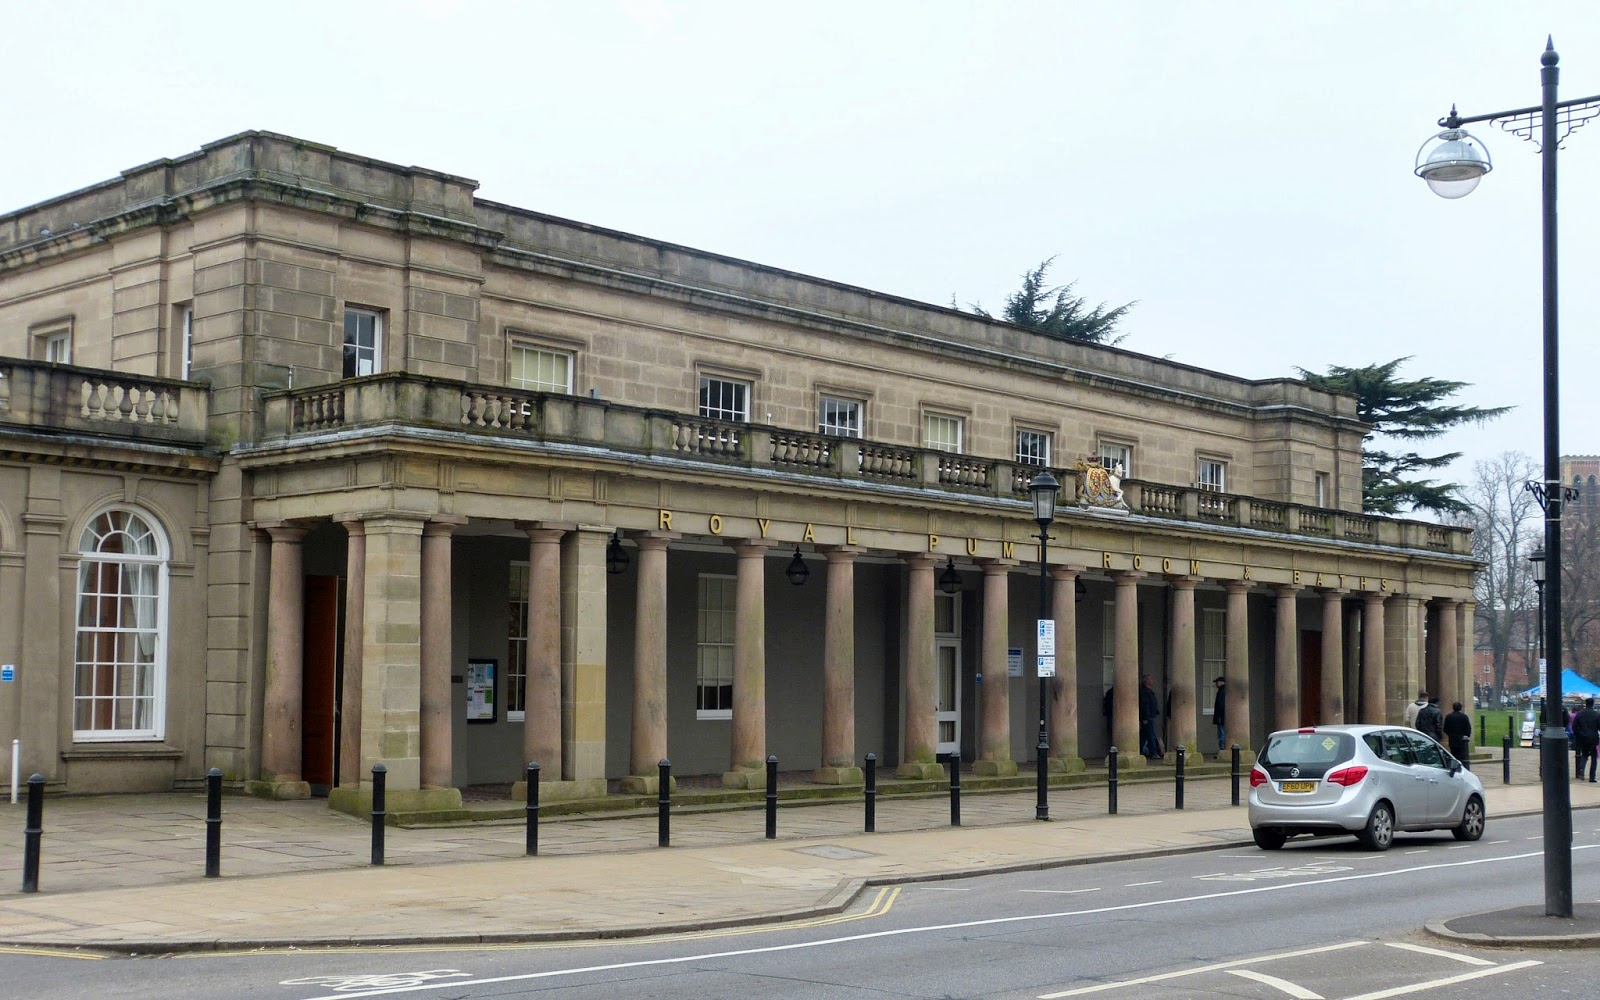 Royal Pump Room and Baths, Leamington Spa